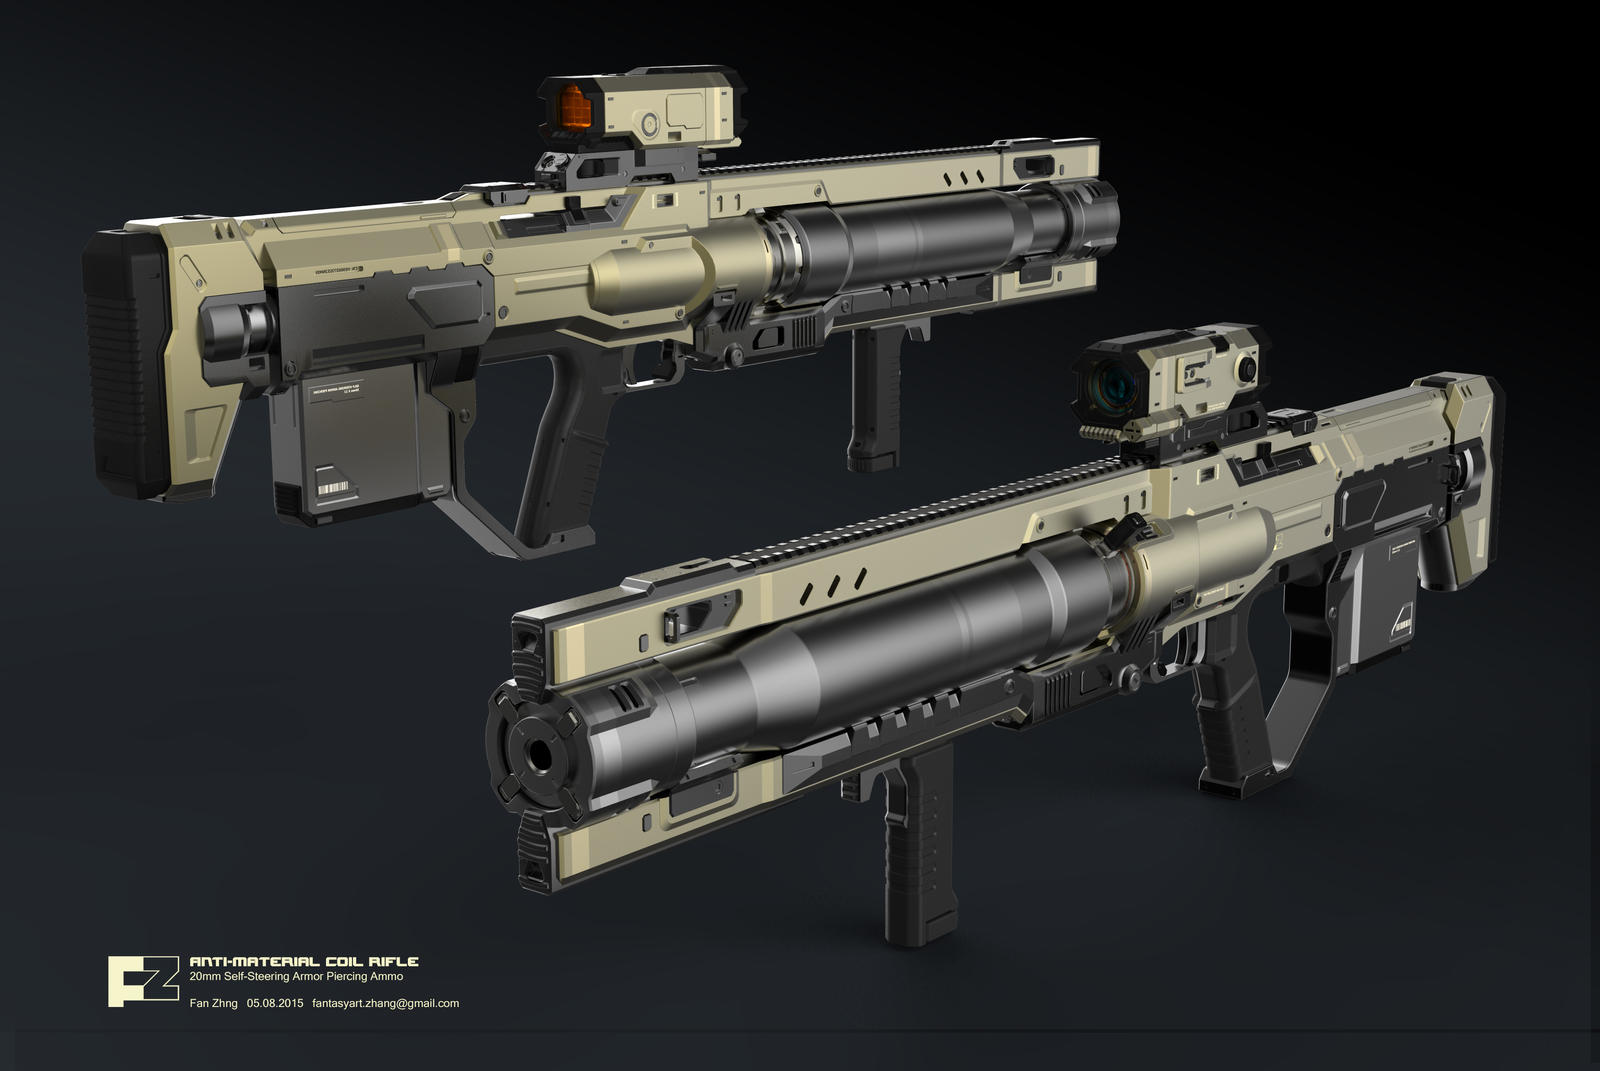 anti_material_coil_gun_by_icedestroyer_d